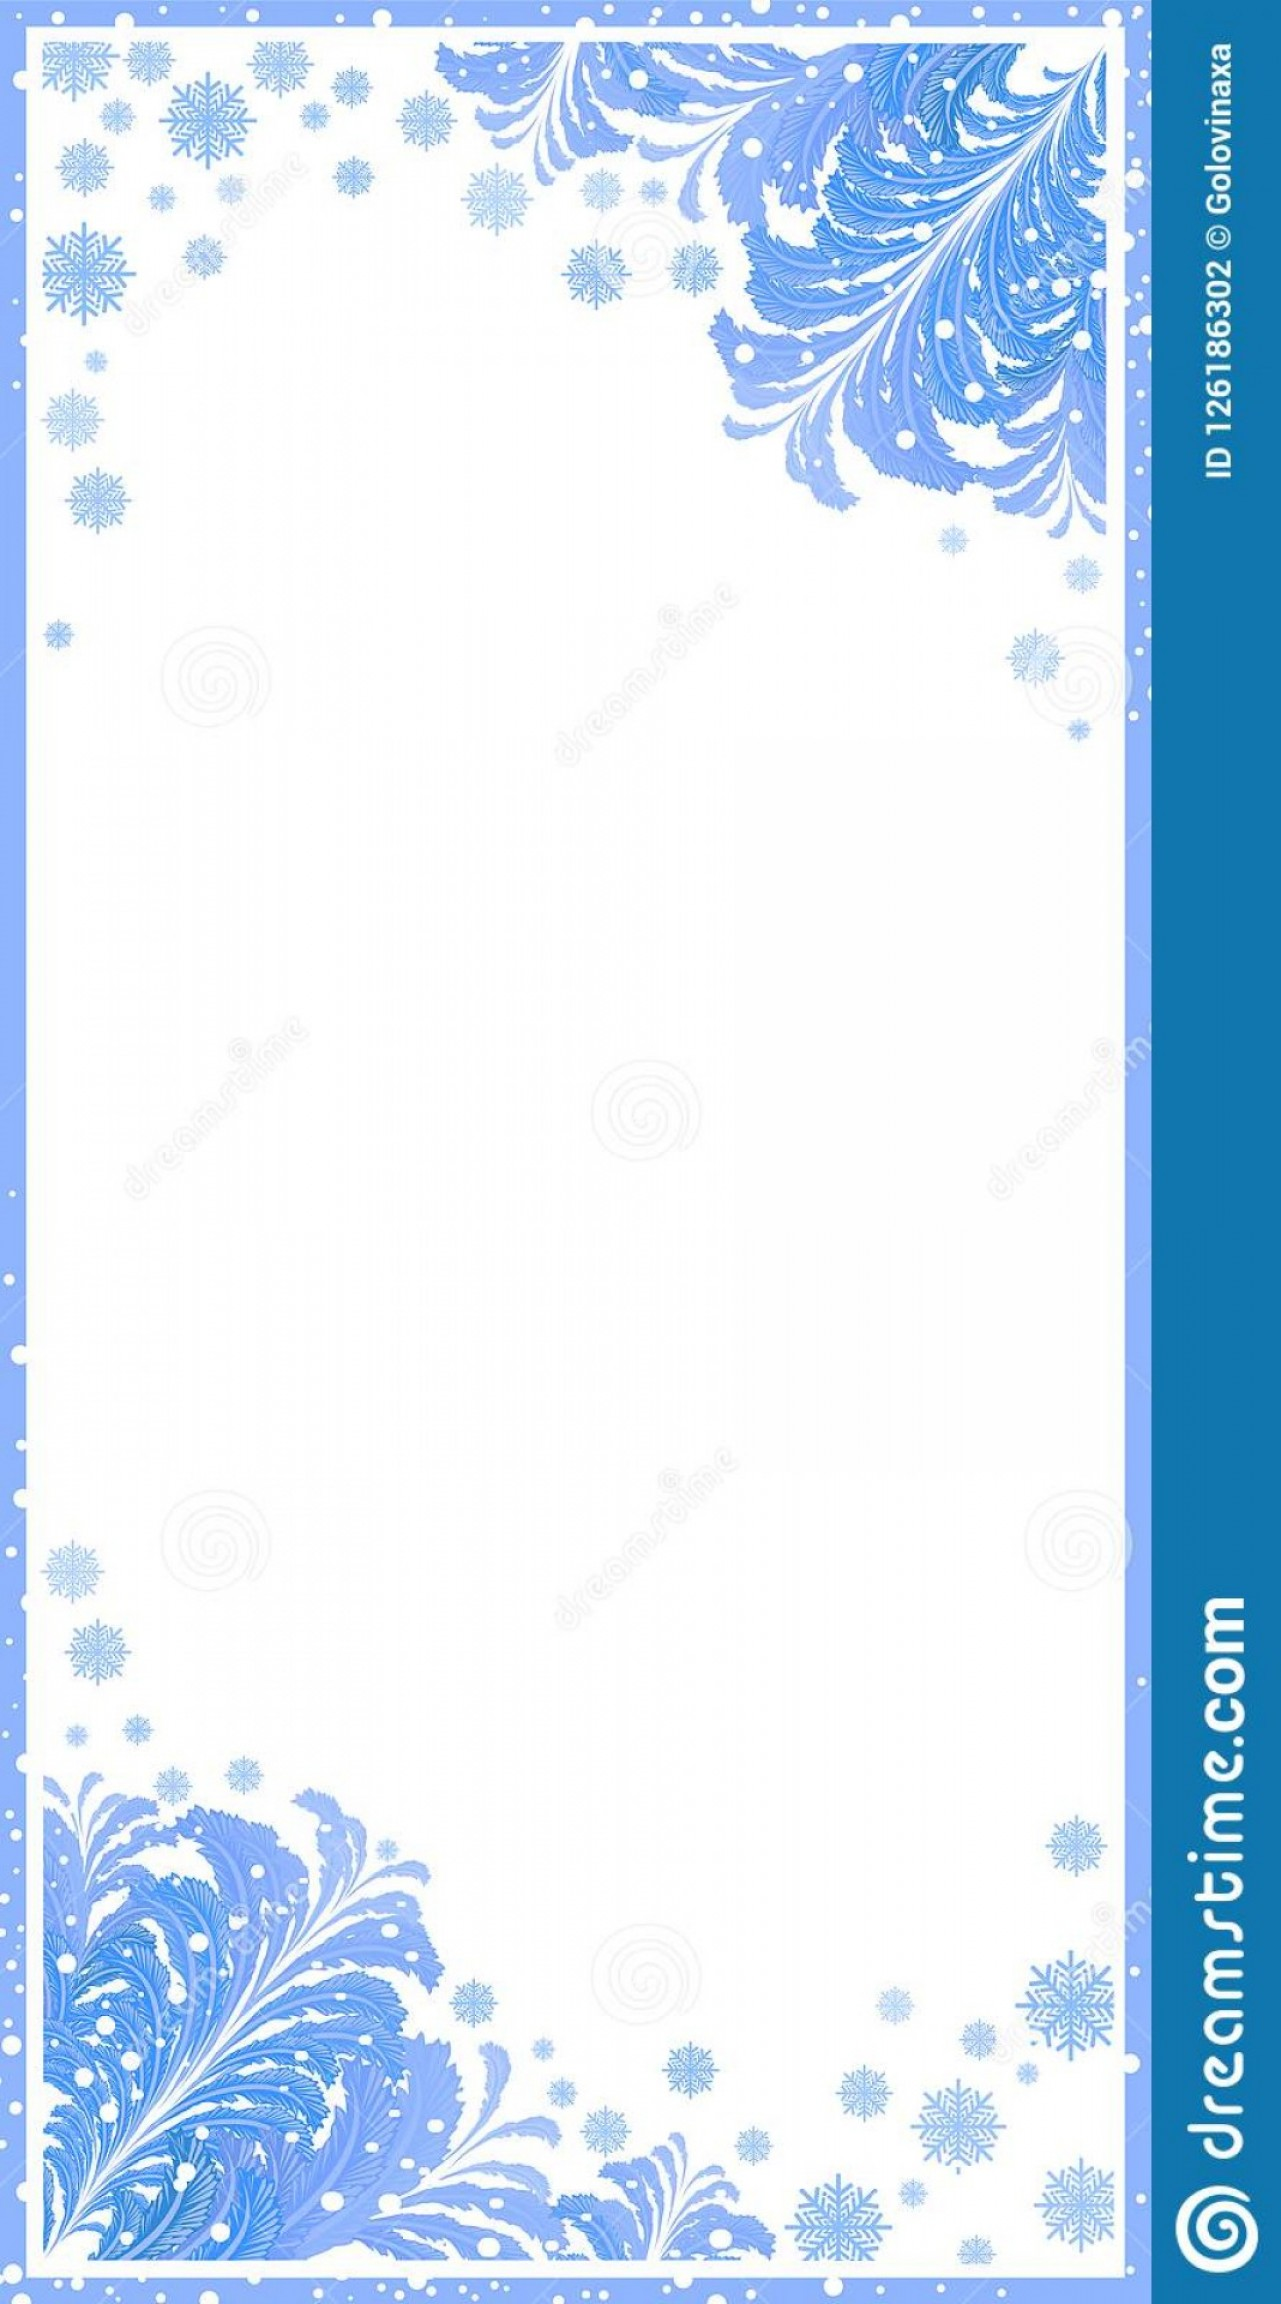 Frost Border Vector: Winter Frame Snow Christmas Background Snowflake Border Vector Snowflakes Frost White Holiday Illustration Season Ne Ice Image